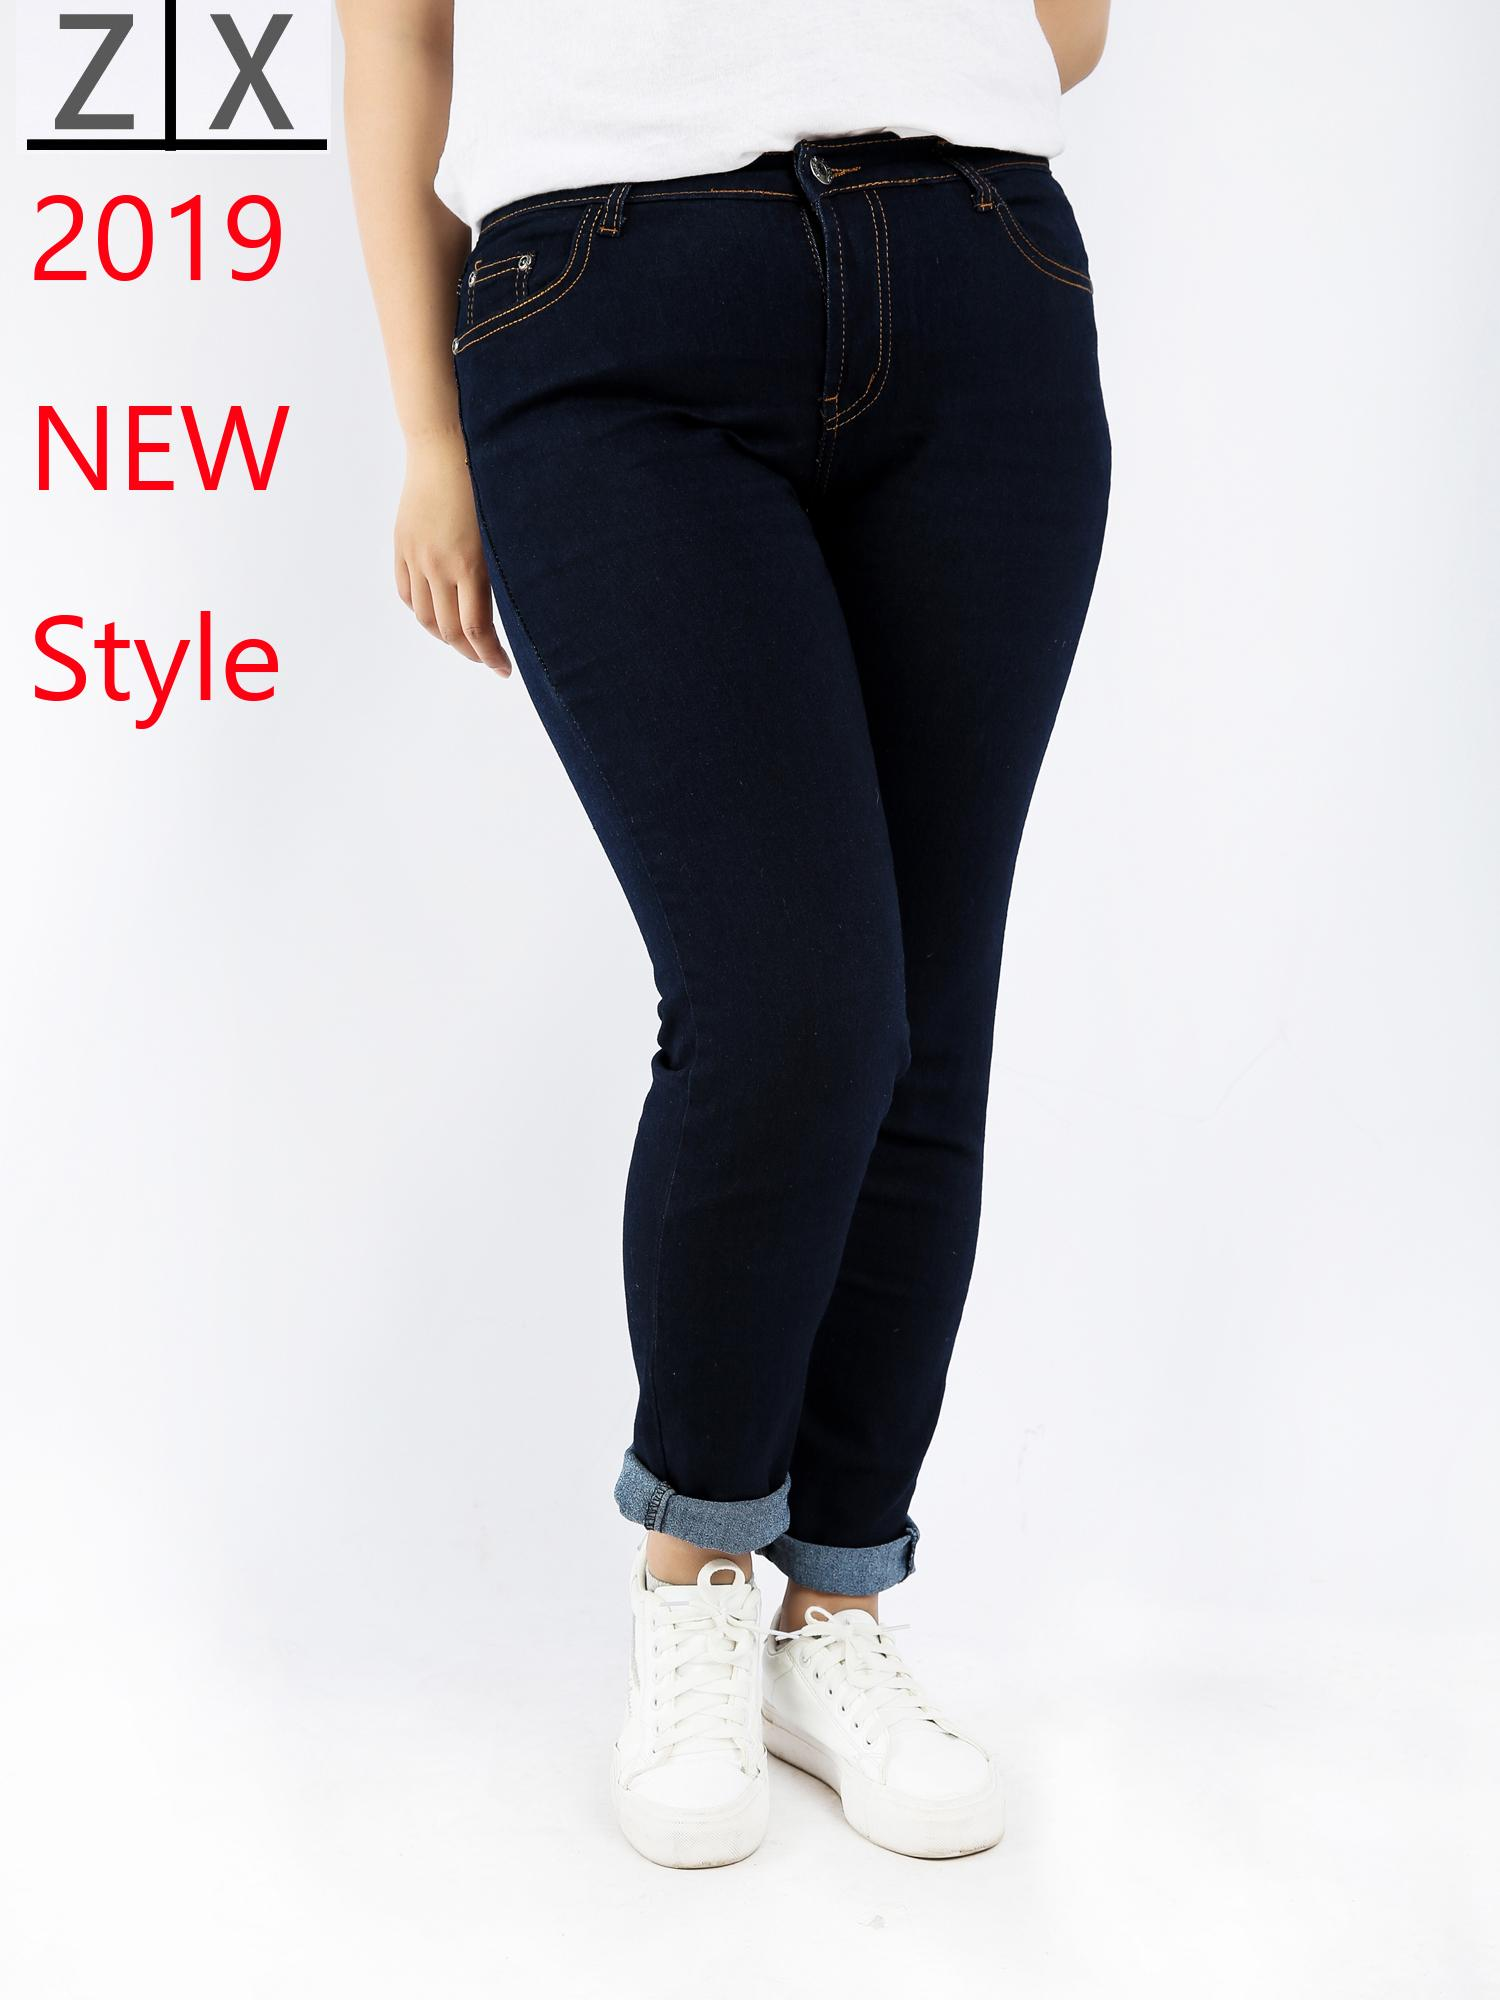 7b7fc47e937 Jeans for Women for sale - Fashion Jeans online brands